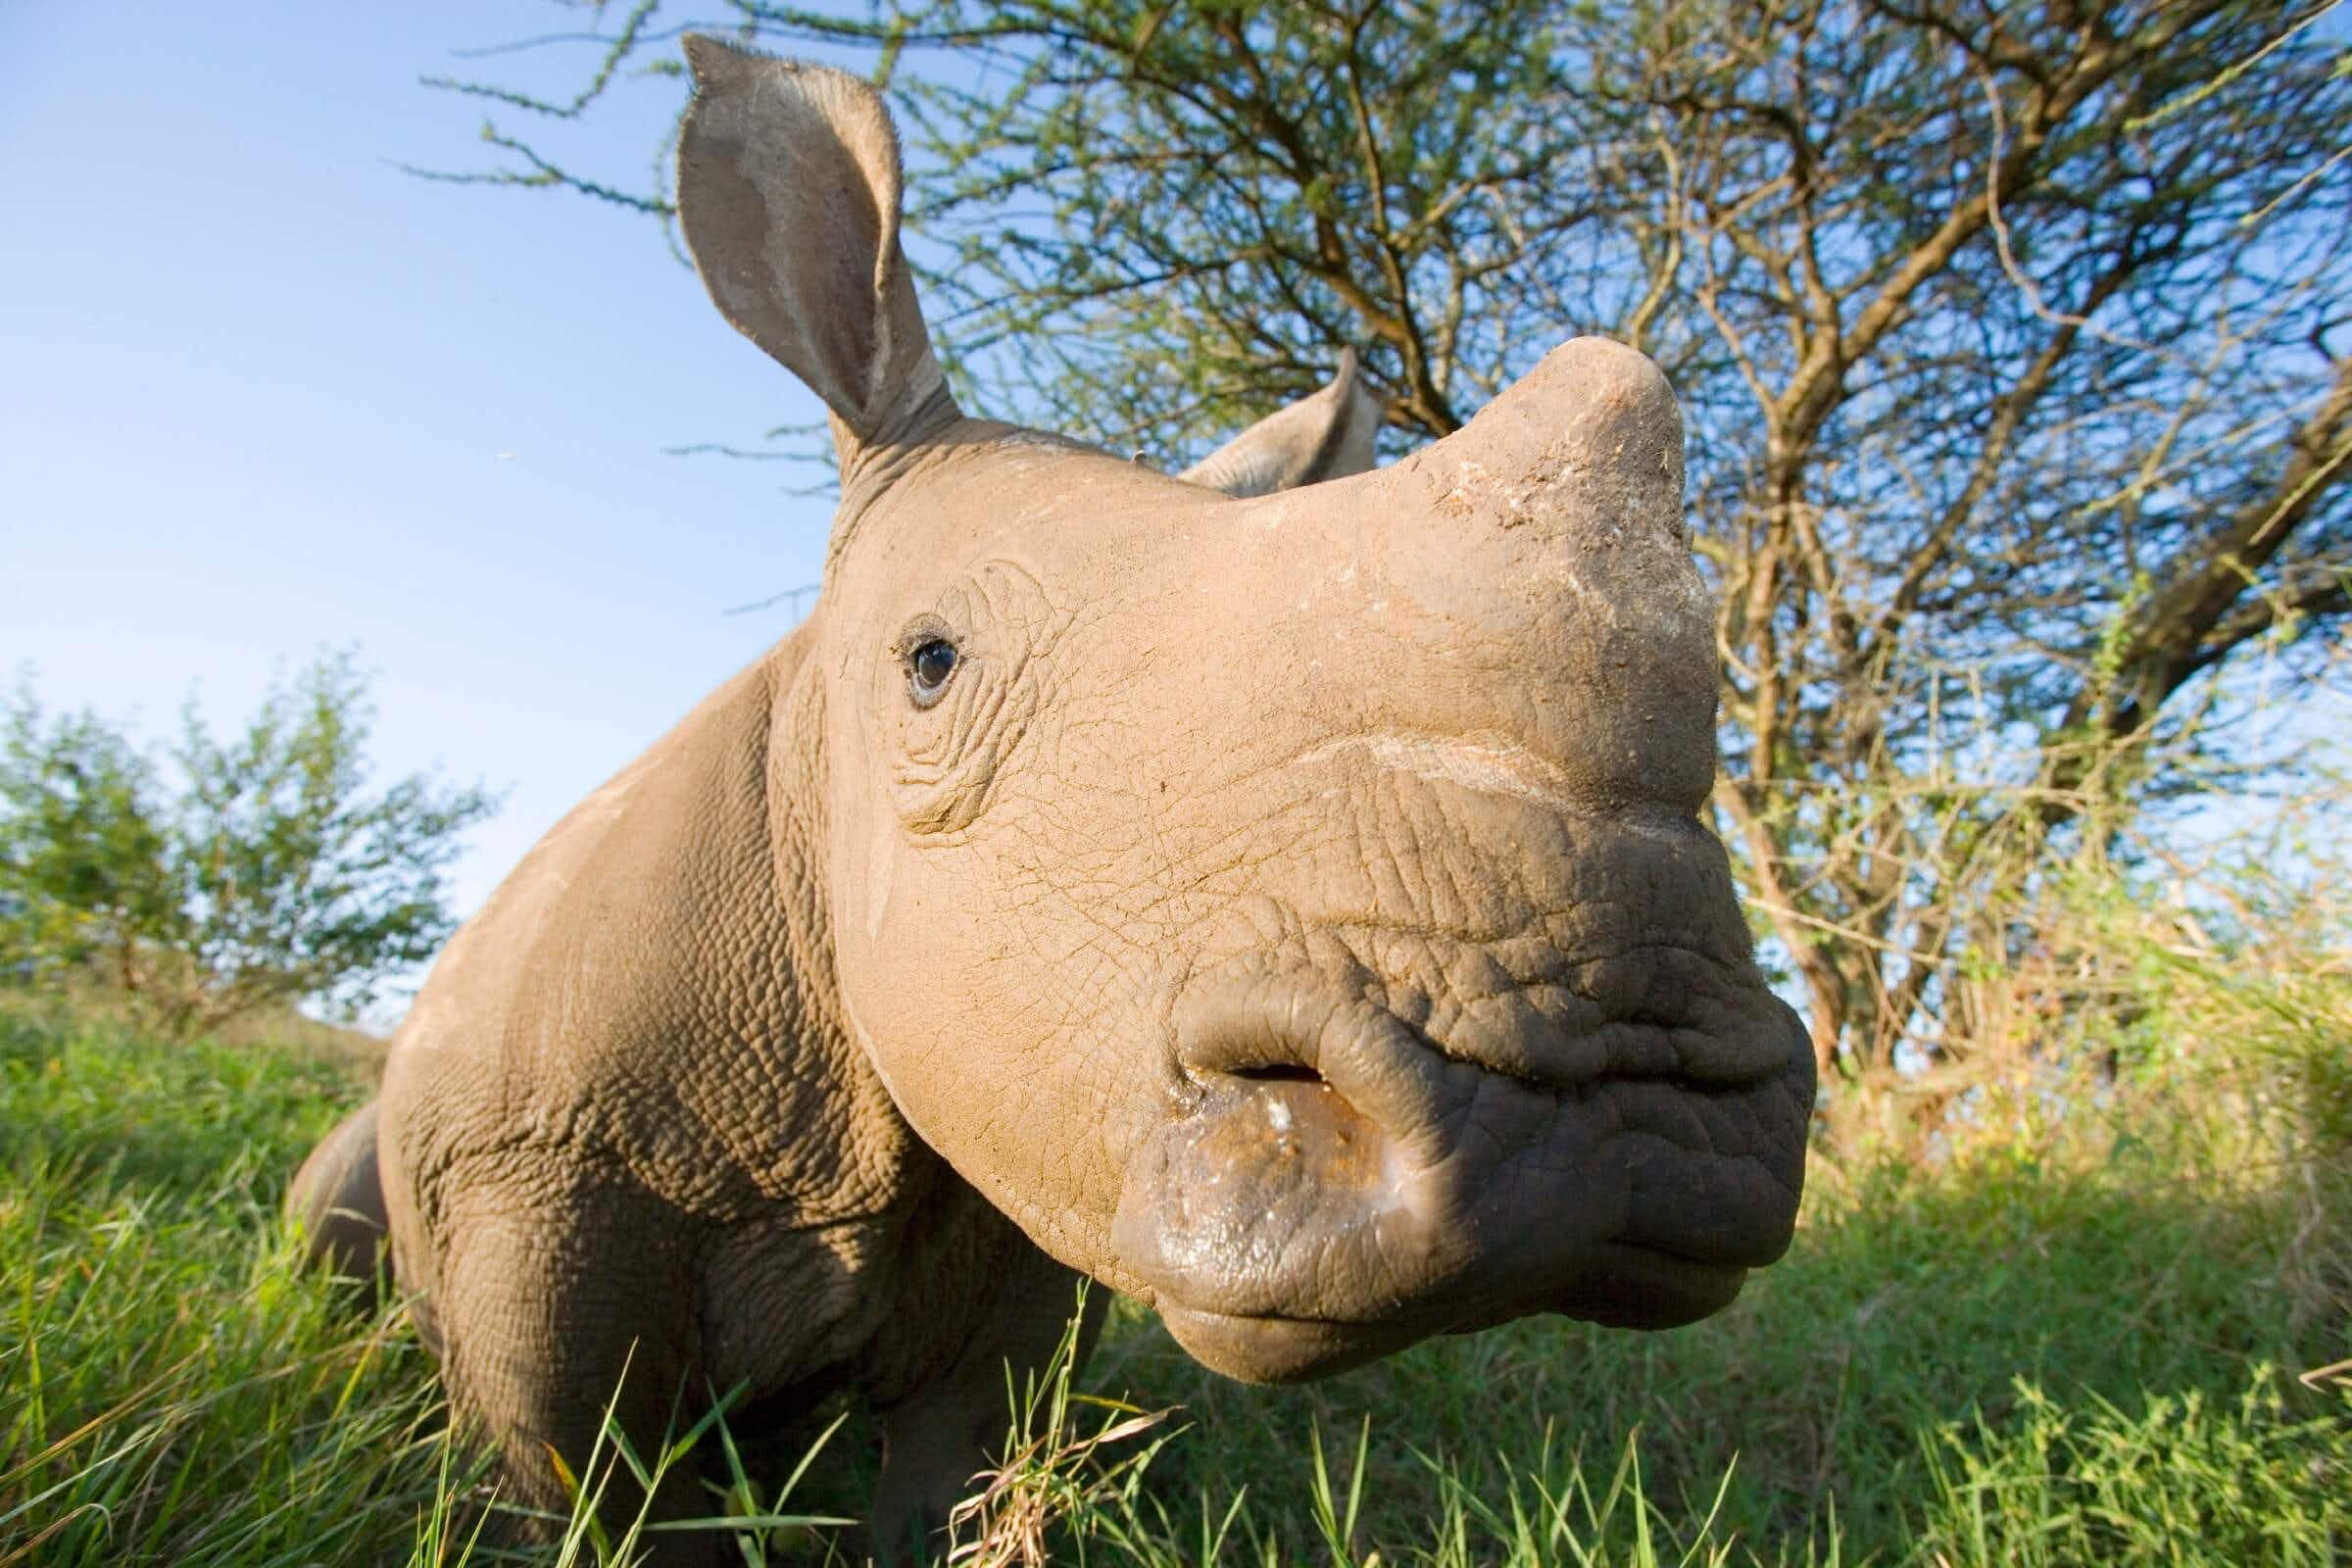 You can walk with black rhinos at this unique Kenyan safari